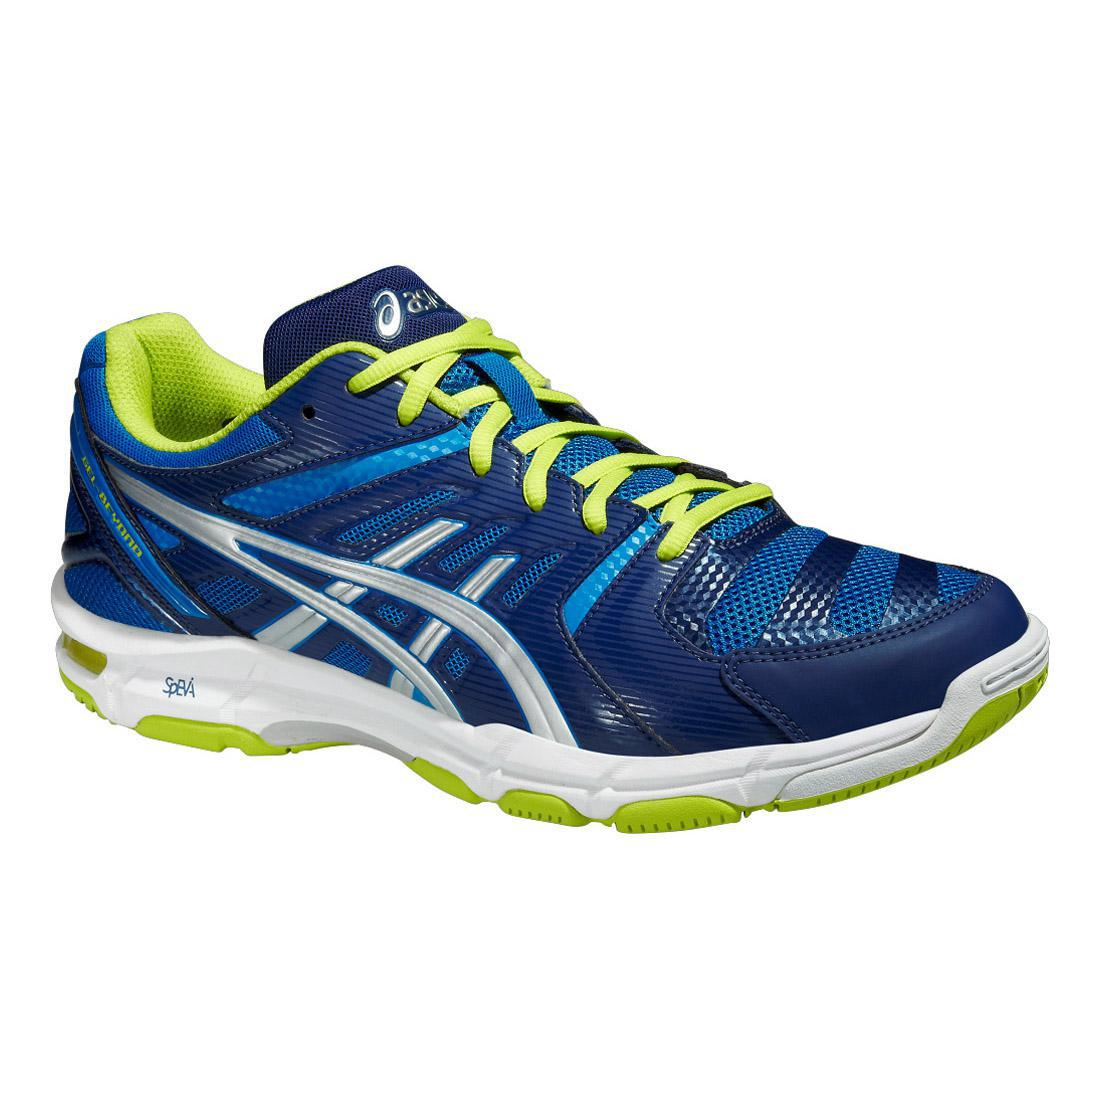 Asics Badminton Shoes Womens